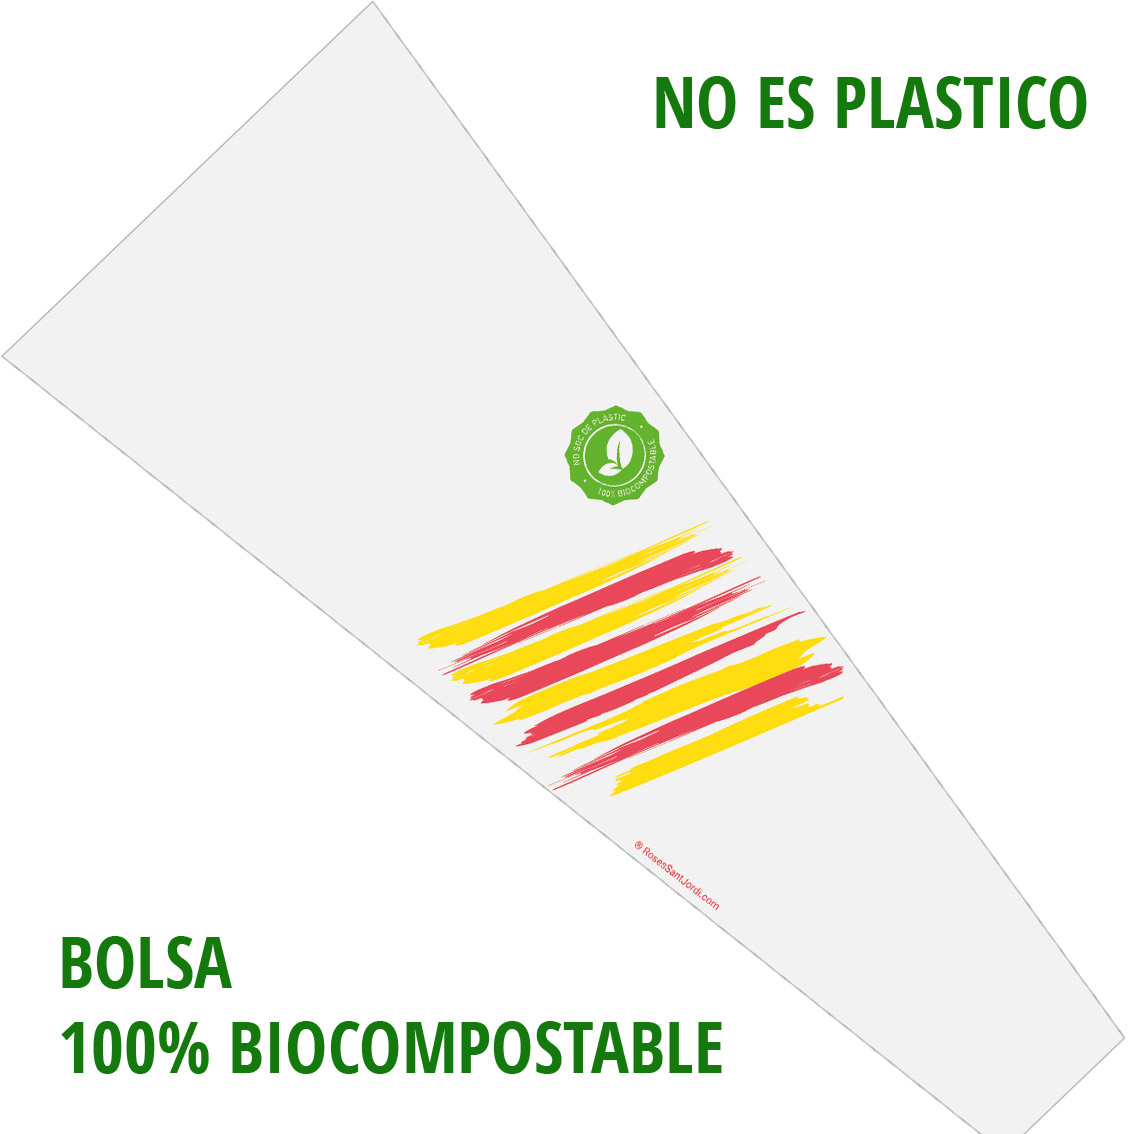 Rosa Sant Jordi Biocompostable